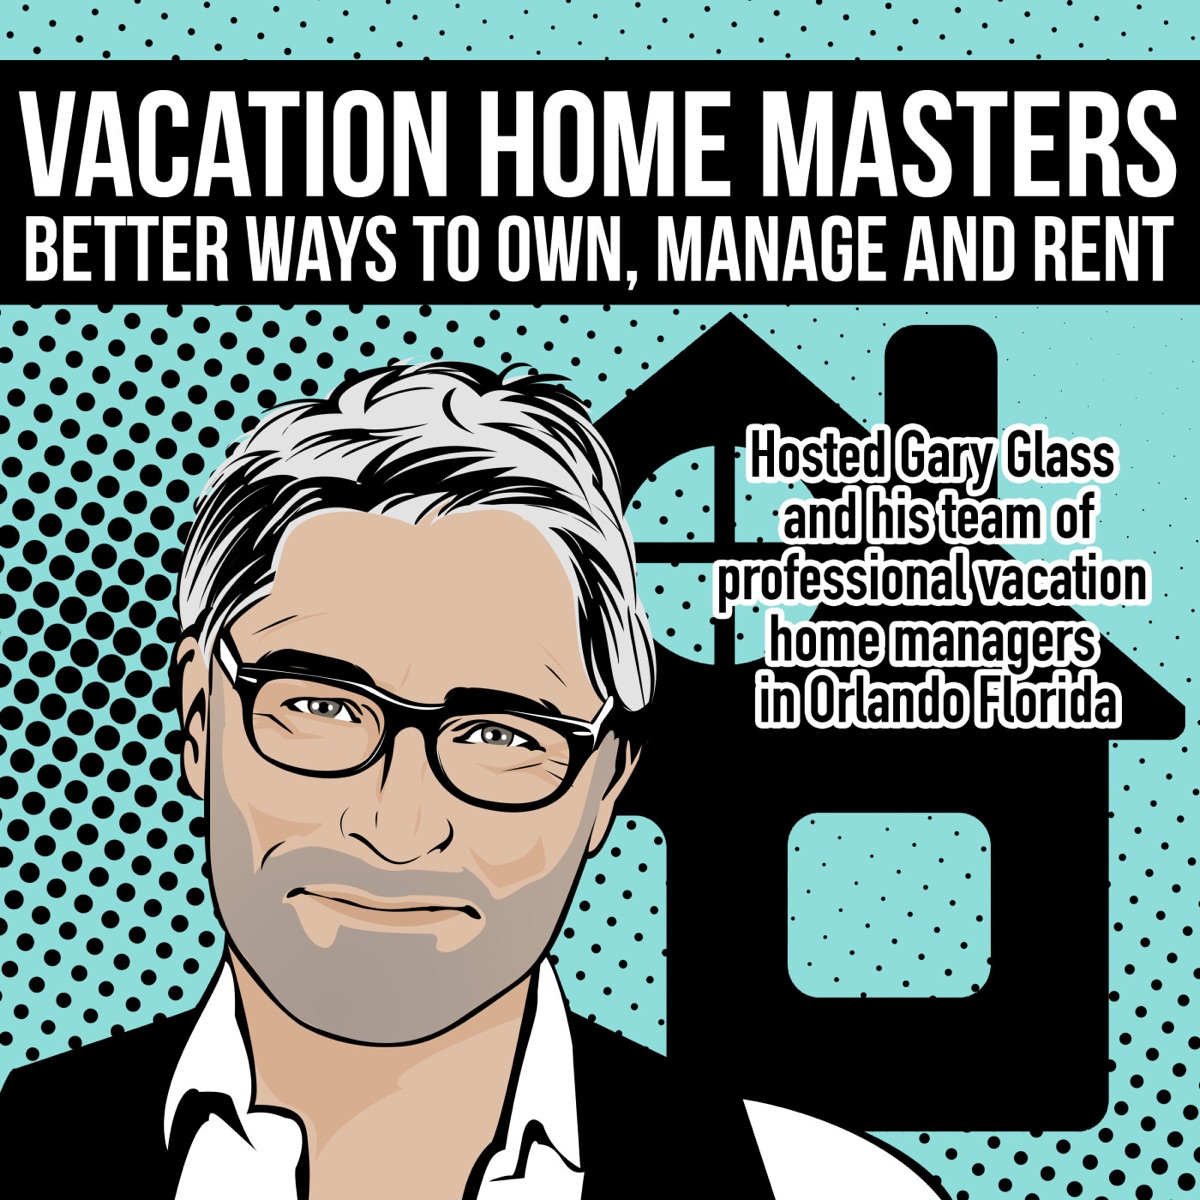 Vacation Home Masters - Best Practices for Management, Ownership & Renting